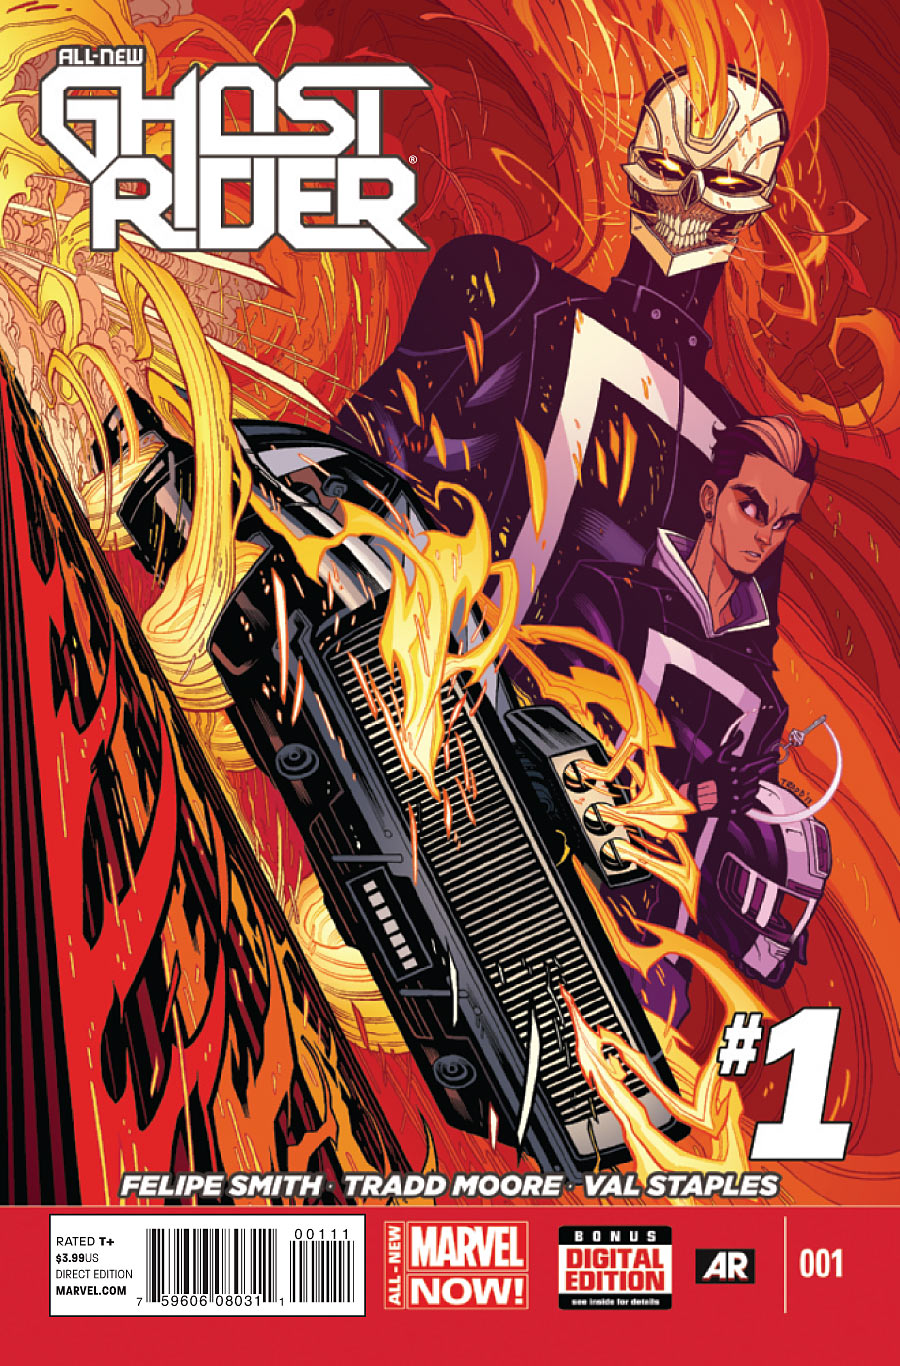 All-New Ghost Rider Vol.1 #1